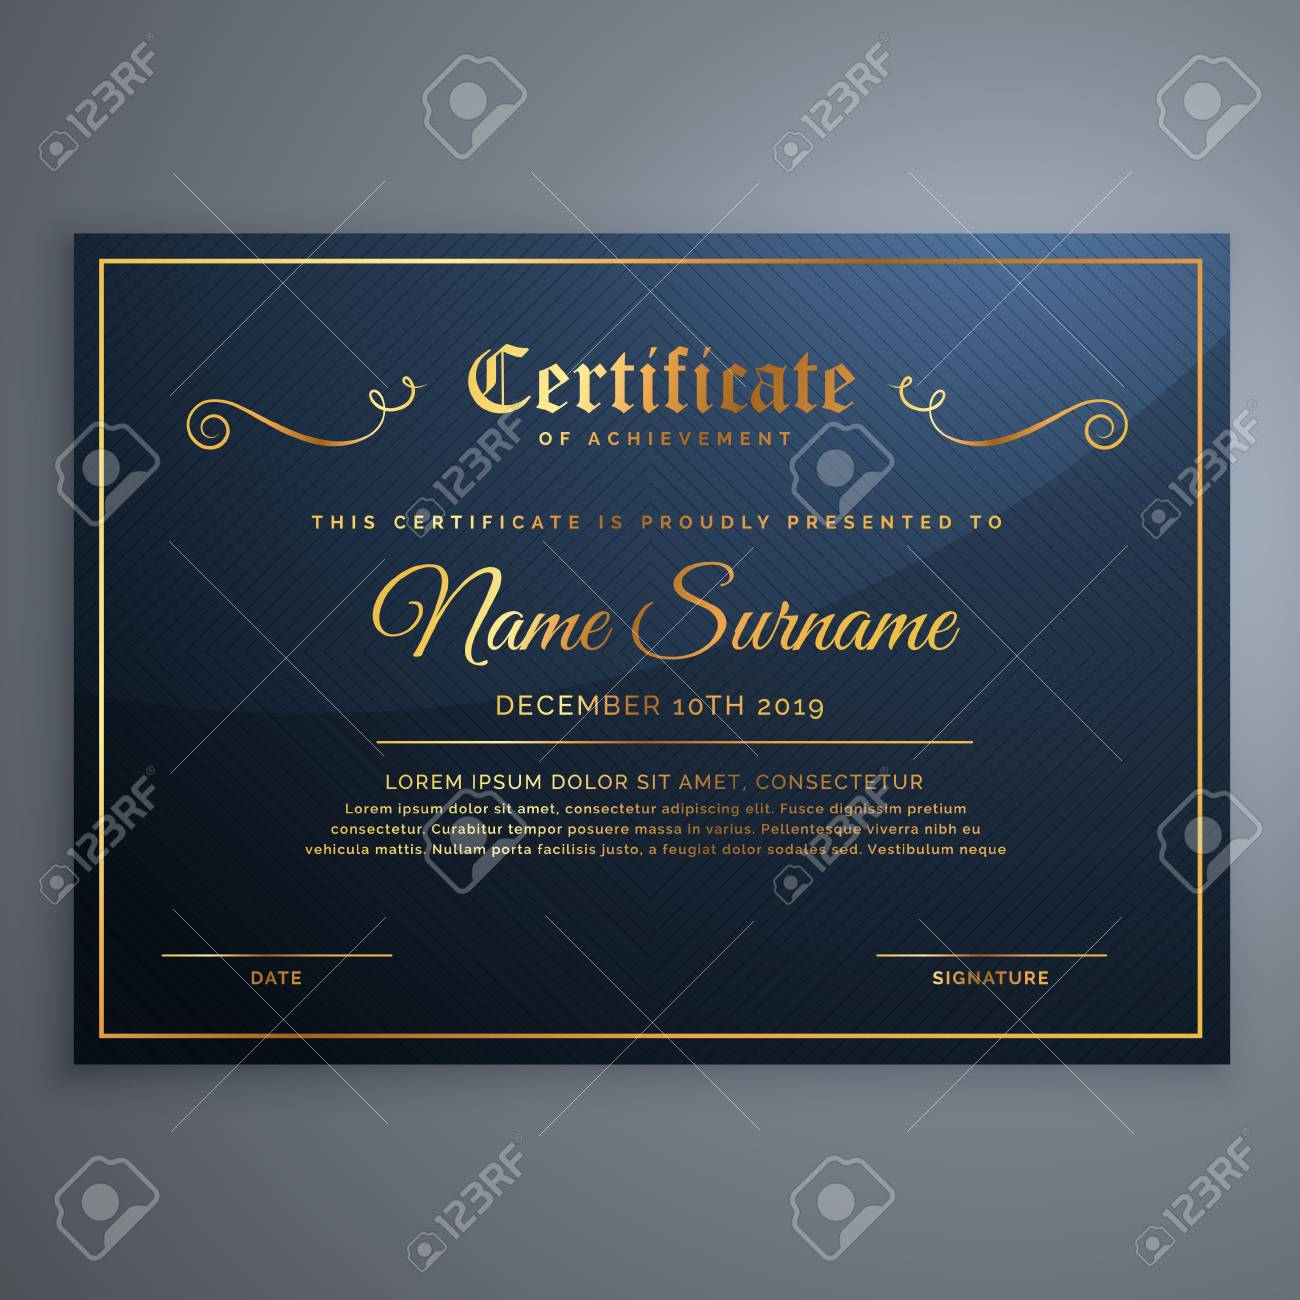 Premium Blue Certificate Template Design In Golden Style Royalty